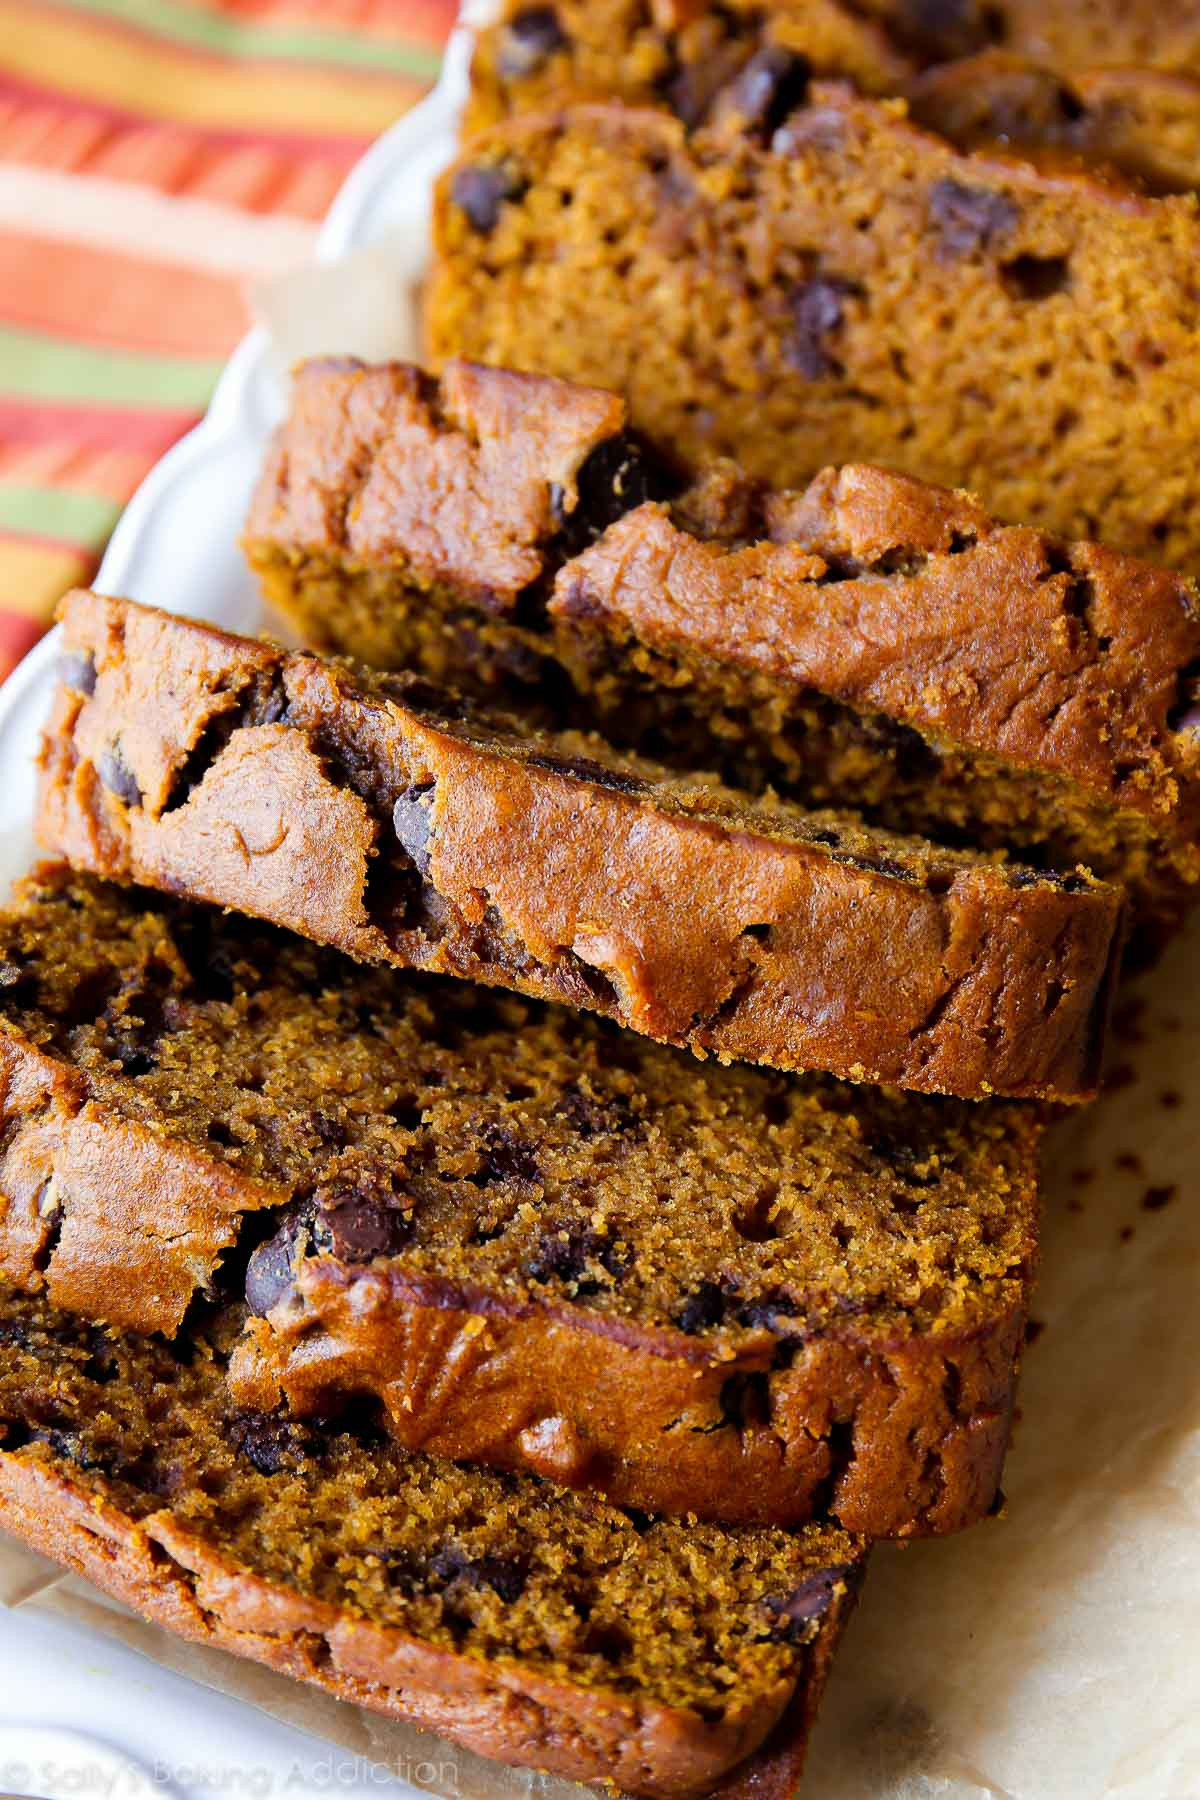 Recipe For Pumpkin Bread  Pumpkin Chocolate Chip Bread Sallys Baking Addiction